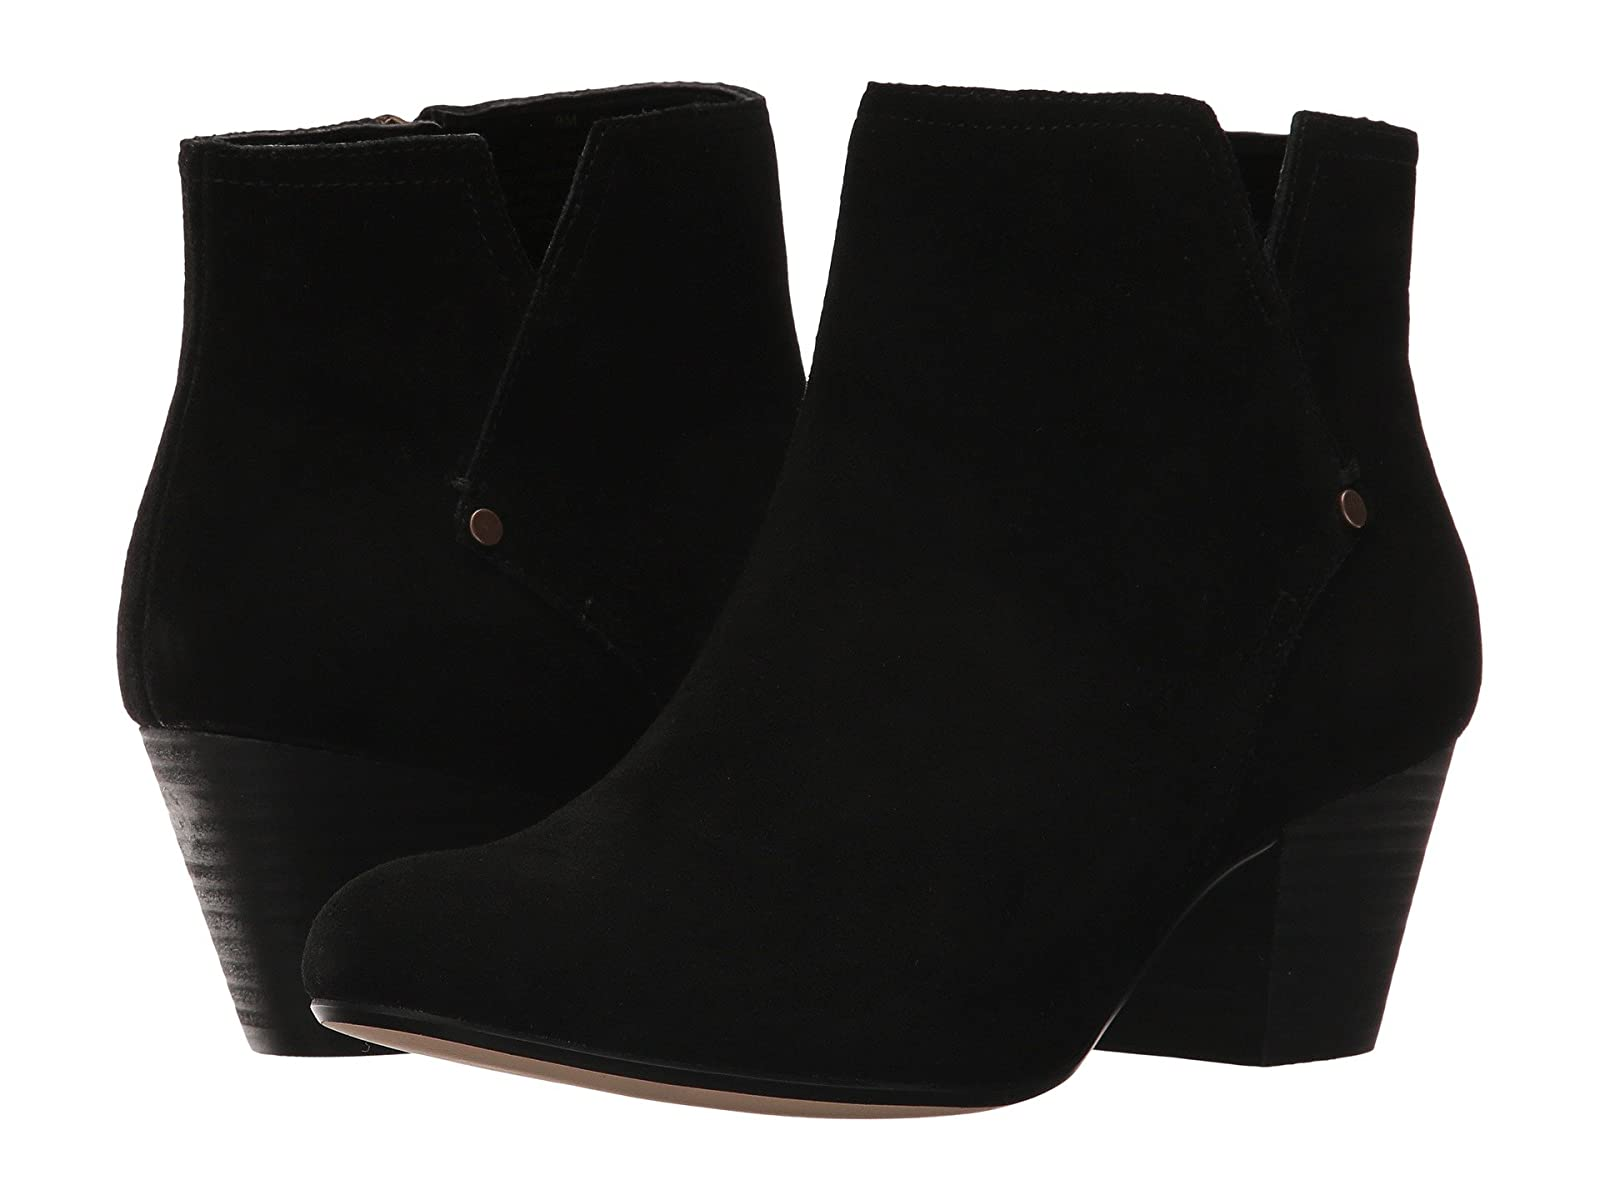 Nine West HadrielCheap and distinctive eye-catching shoes